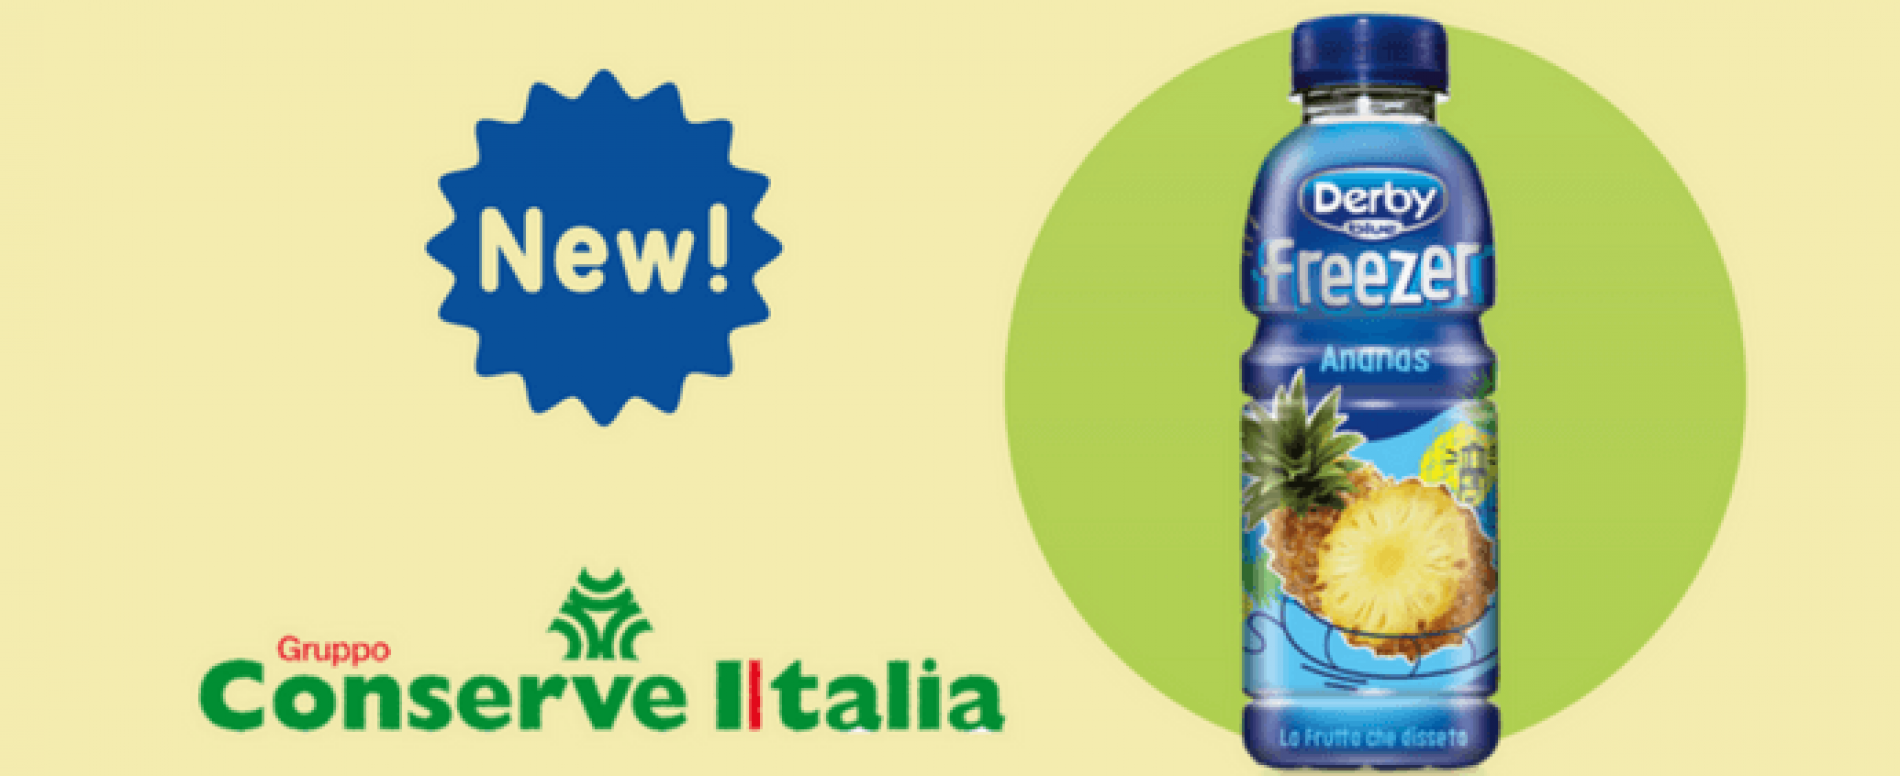 Derby Blue Freezer Ananas disponibile nel canale Vending